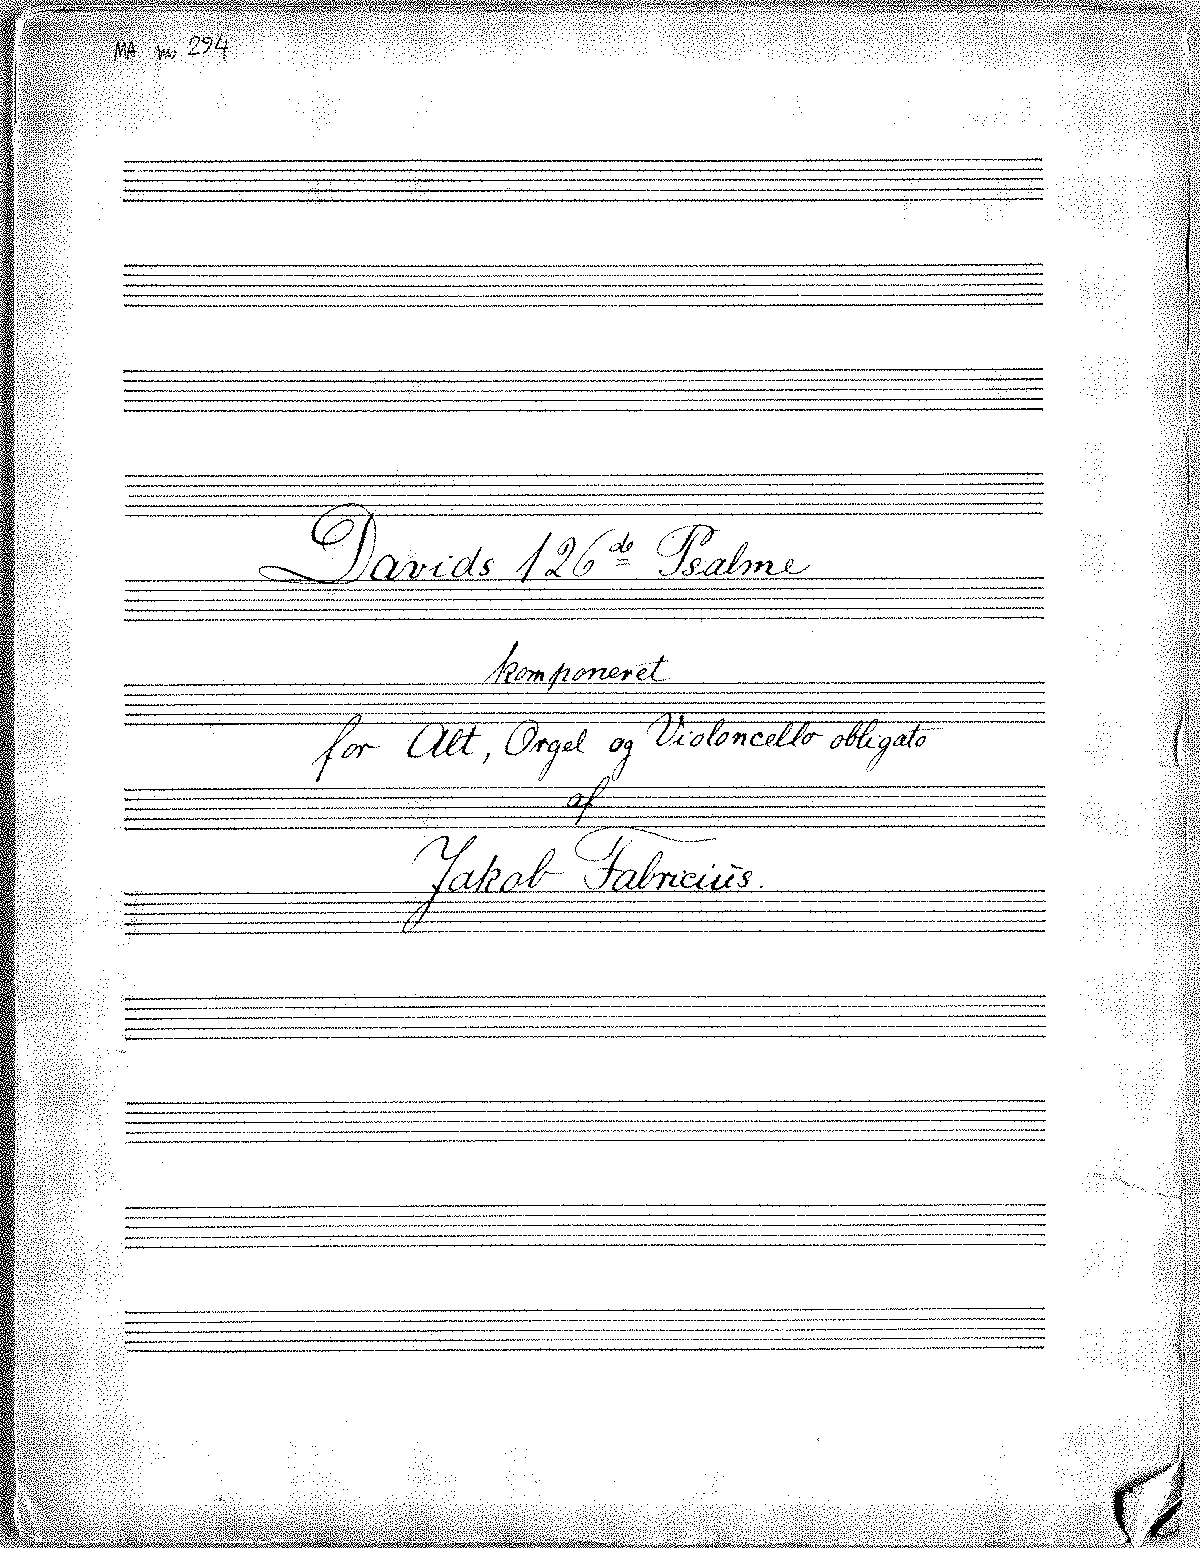 PMLP120251-Fabricius.J - Davids 126de Psalme for Alt, Orgel og Cello obligato (Ms autograph).pdf